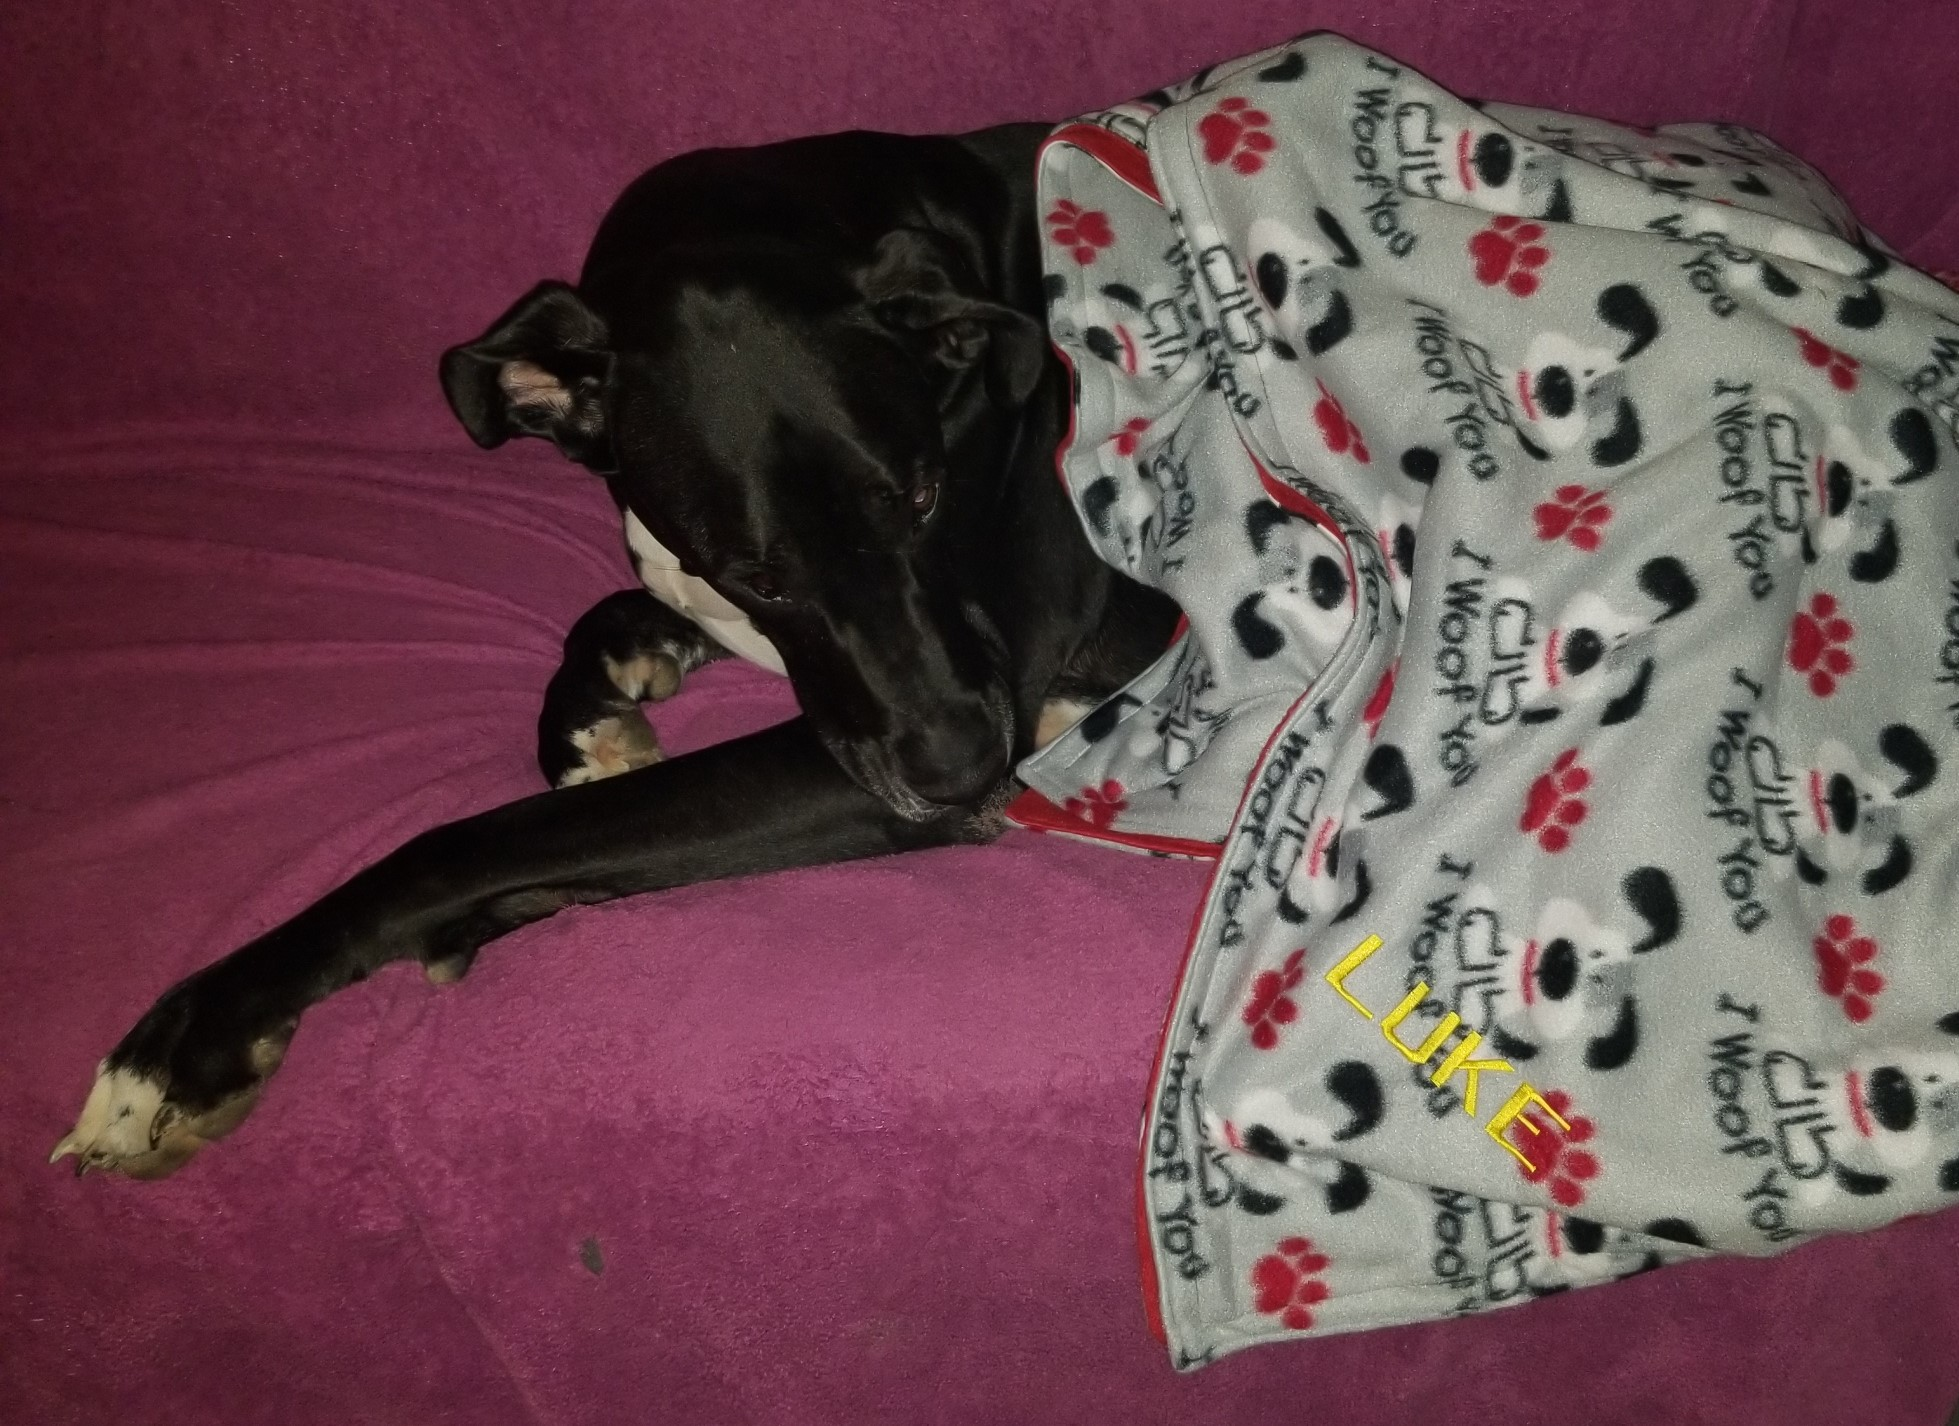 Luke the Great Dane in his blanket